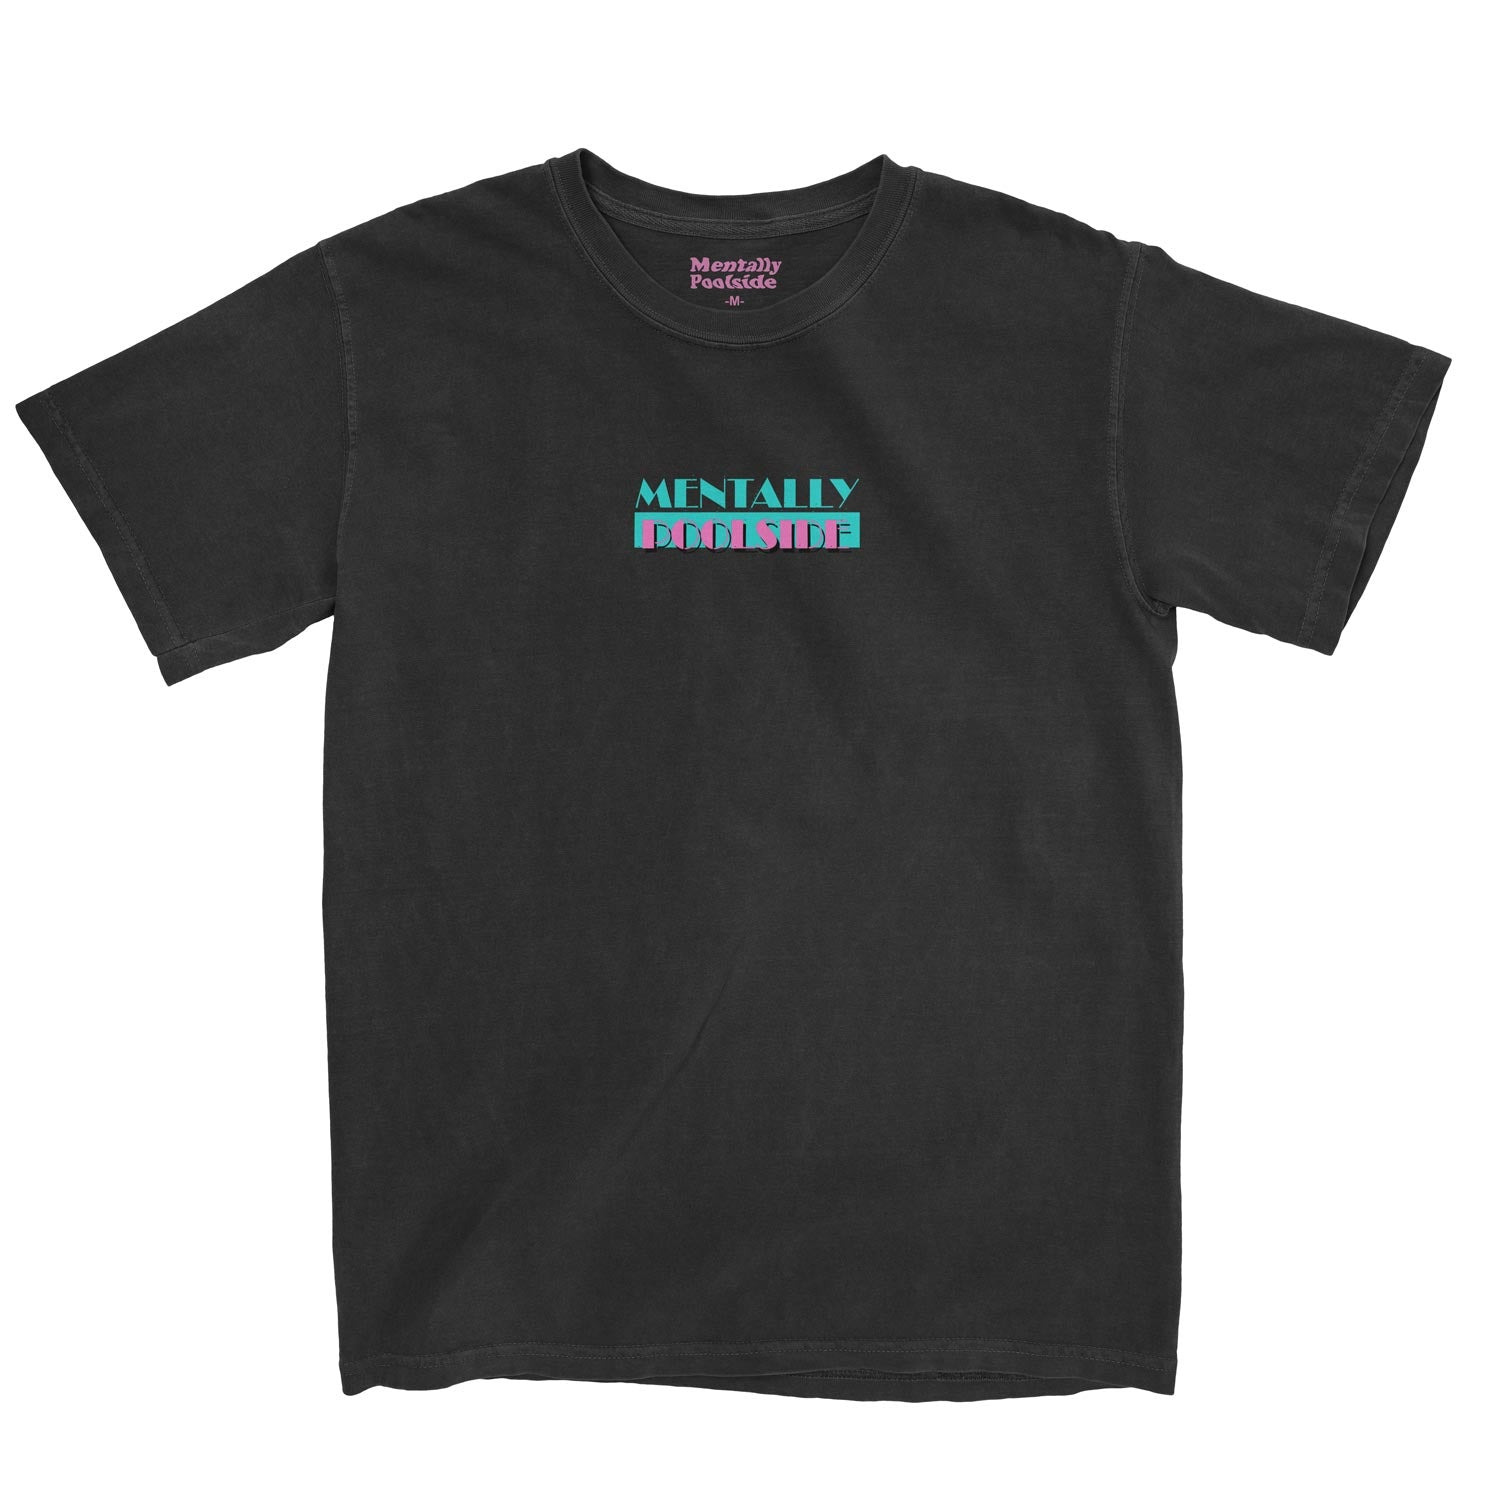 Poolside Vice-Tee shirt-Comfort colors-Black-S-Mentally Poolside